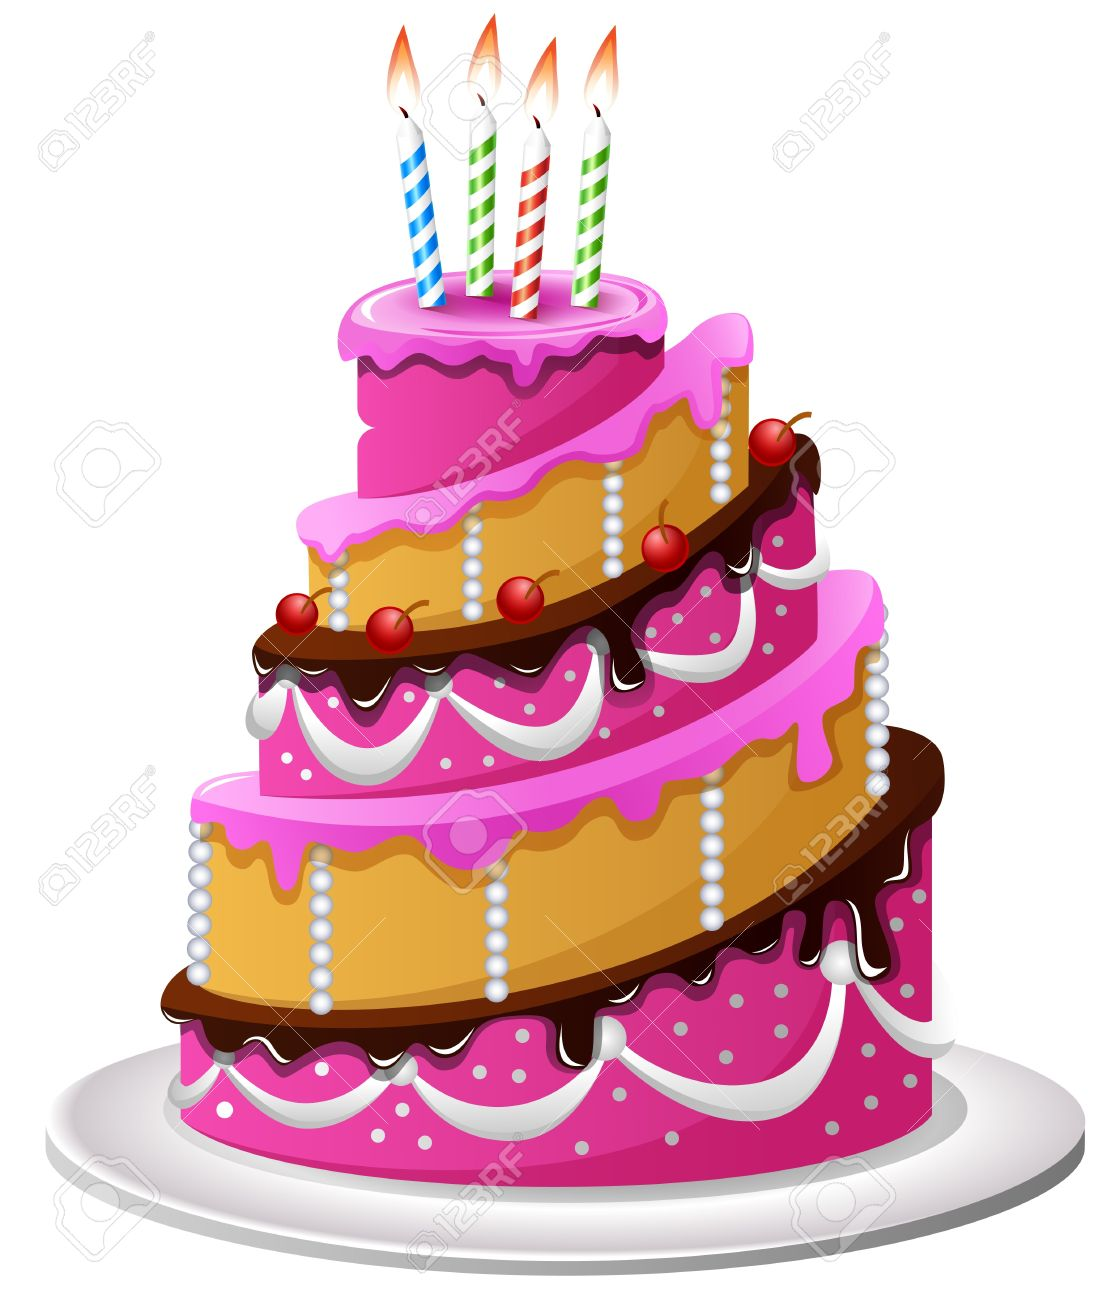 Astonishing Birthday Cake Cartoon Royalty Free Cliparts Vectors And Stock Funny Birthday Cards Online Elaedamsfinfo